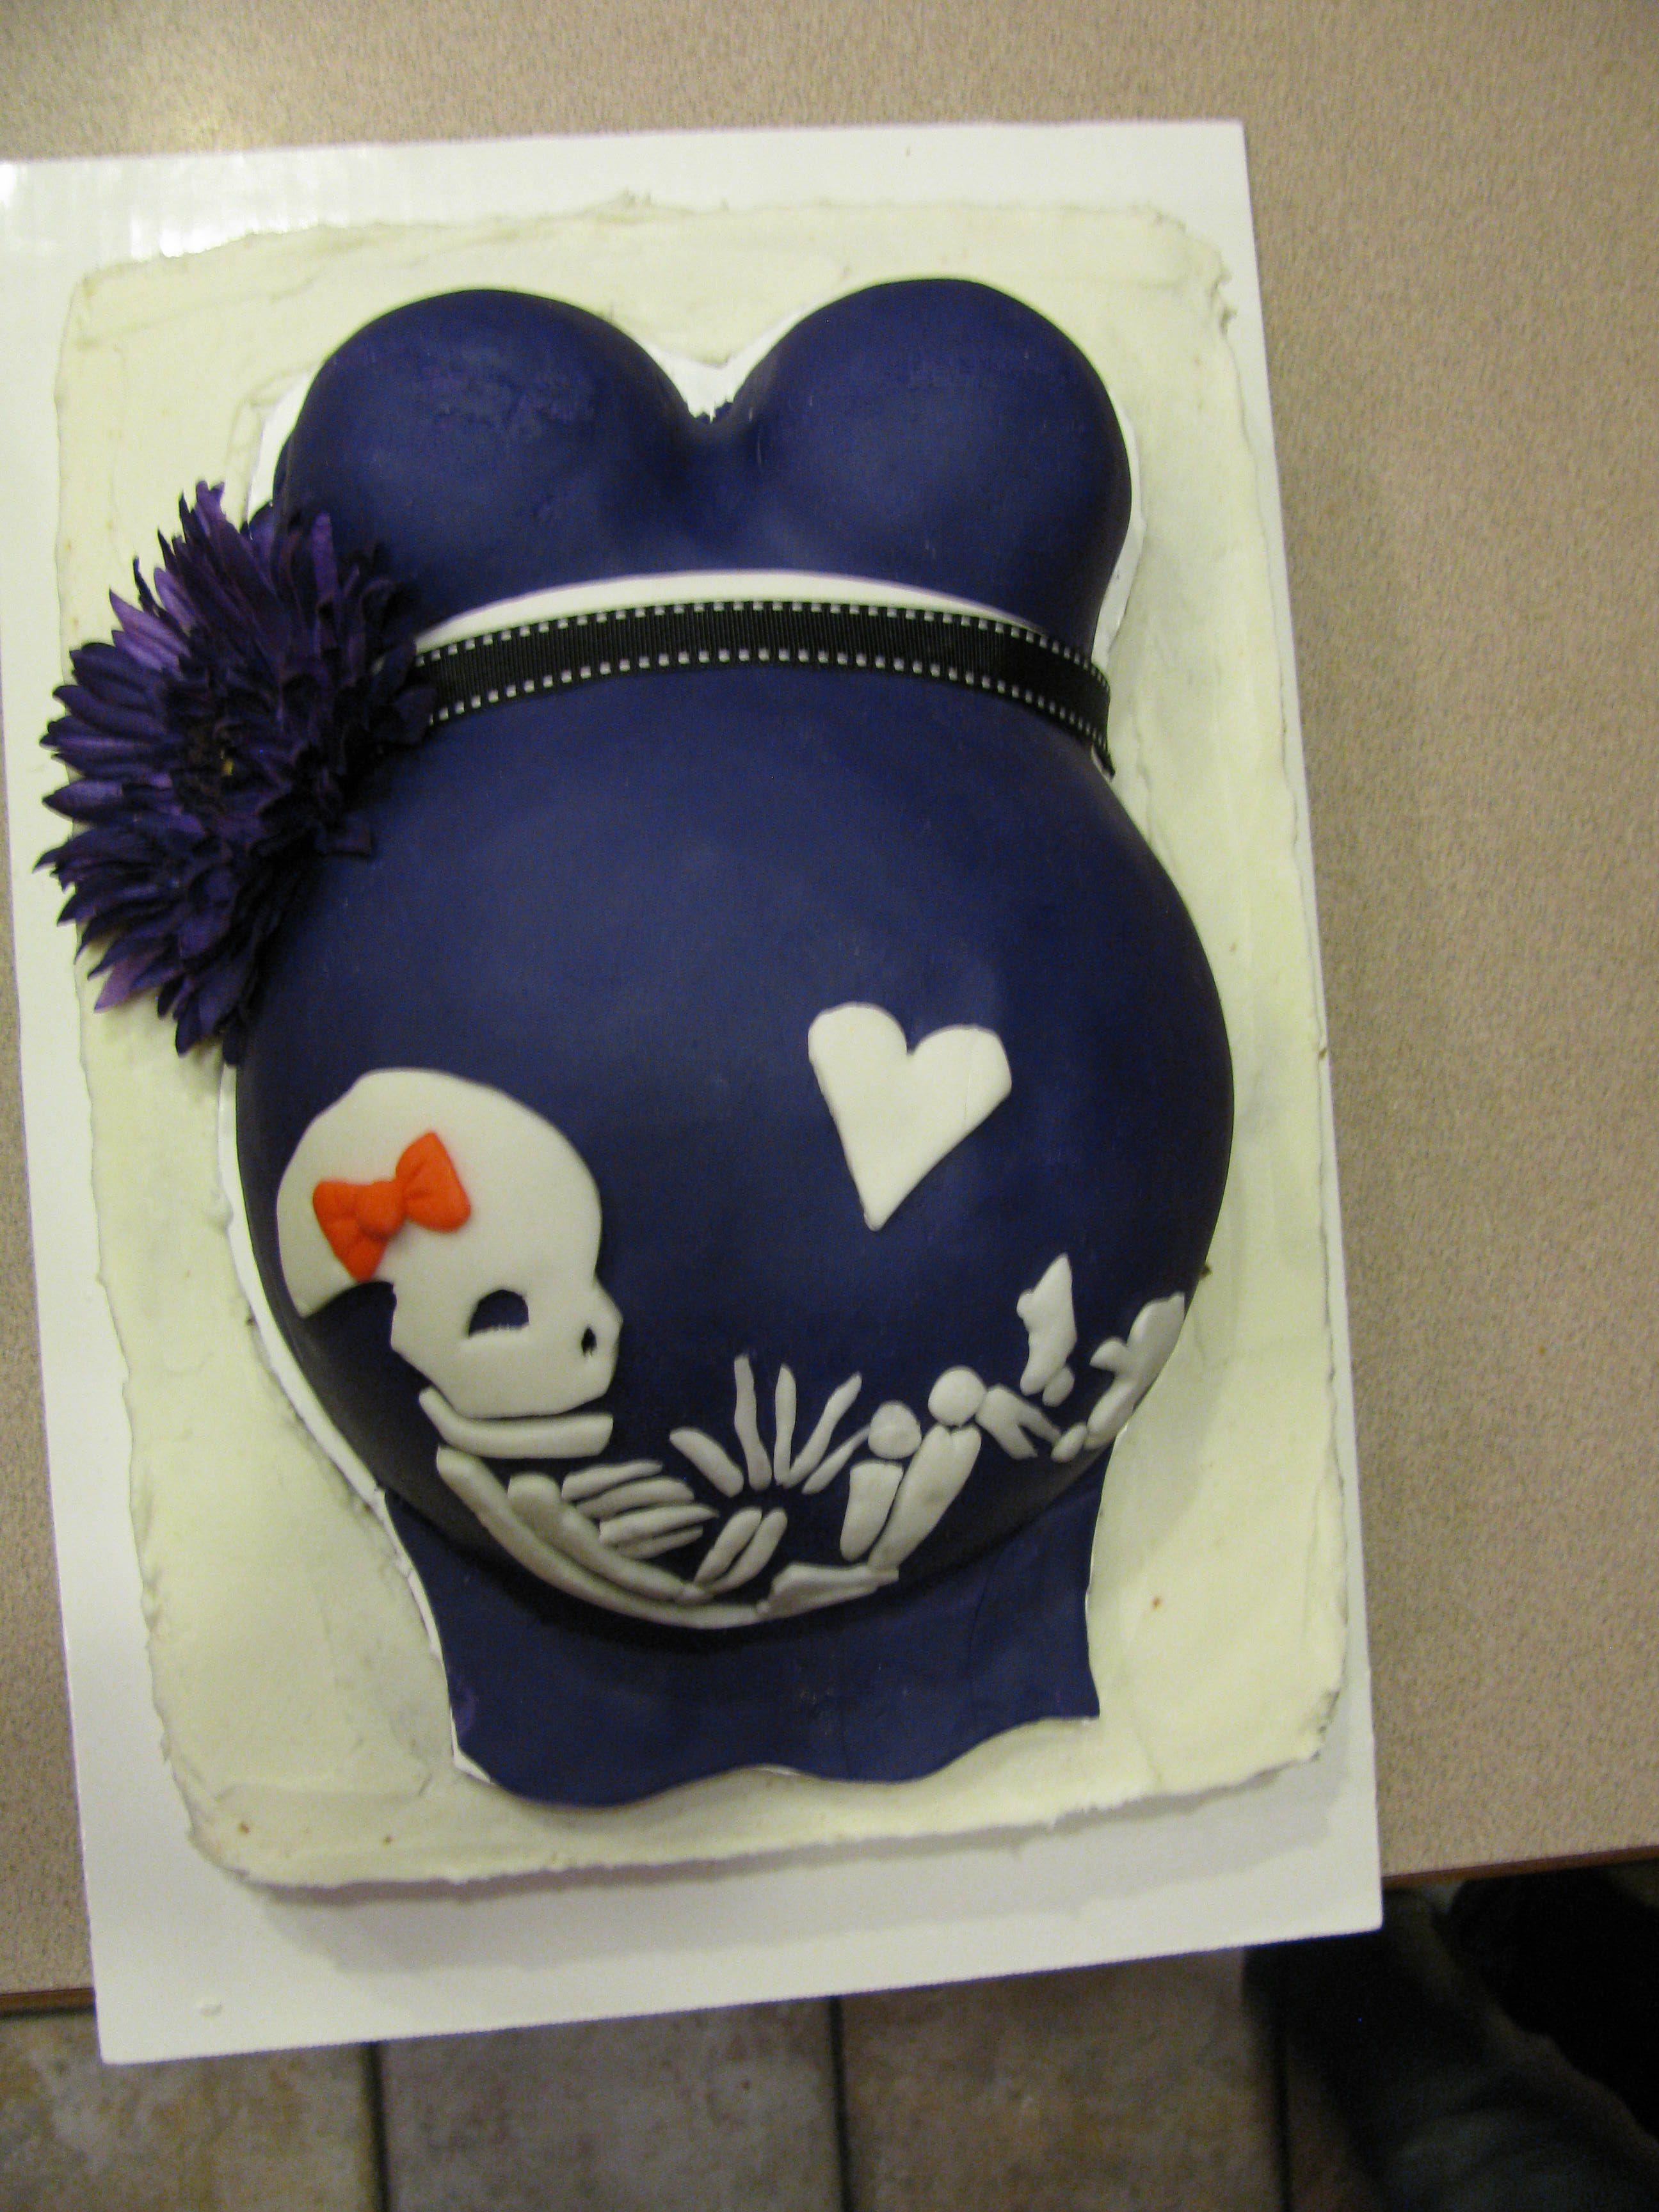 Halloween Baby Shower Cakes  Belly Cake Halloween Baby shower cakes